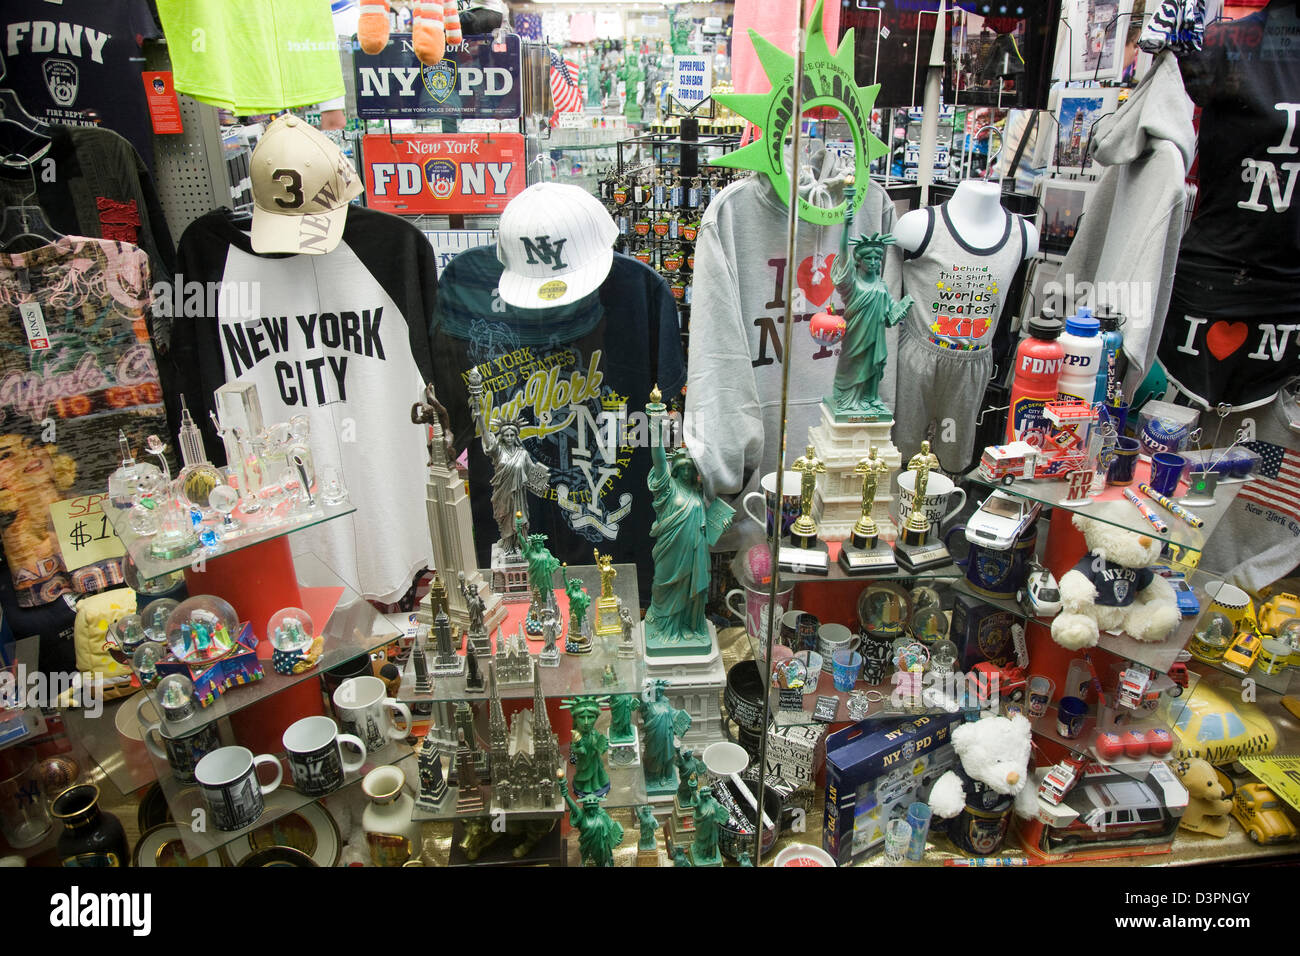 Tourist Souvenirs On Sale In A Shop Window In New York